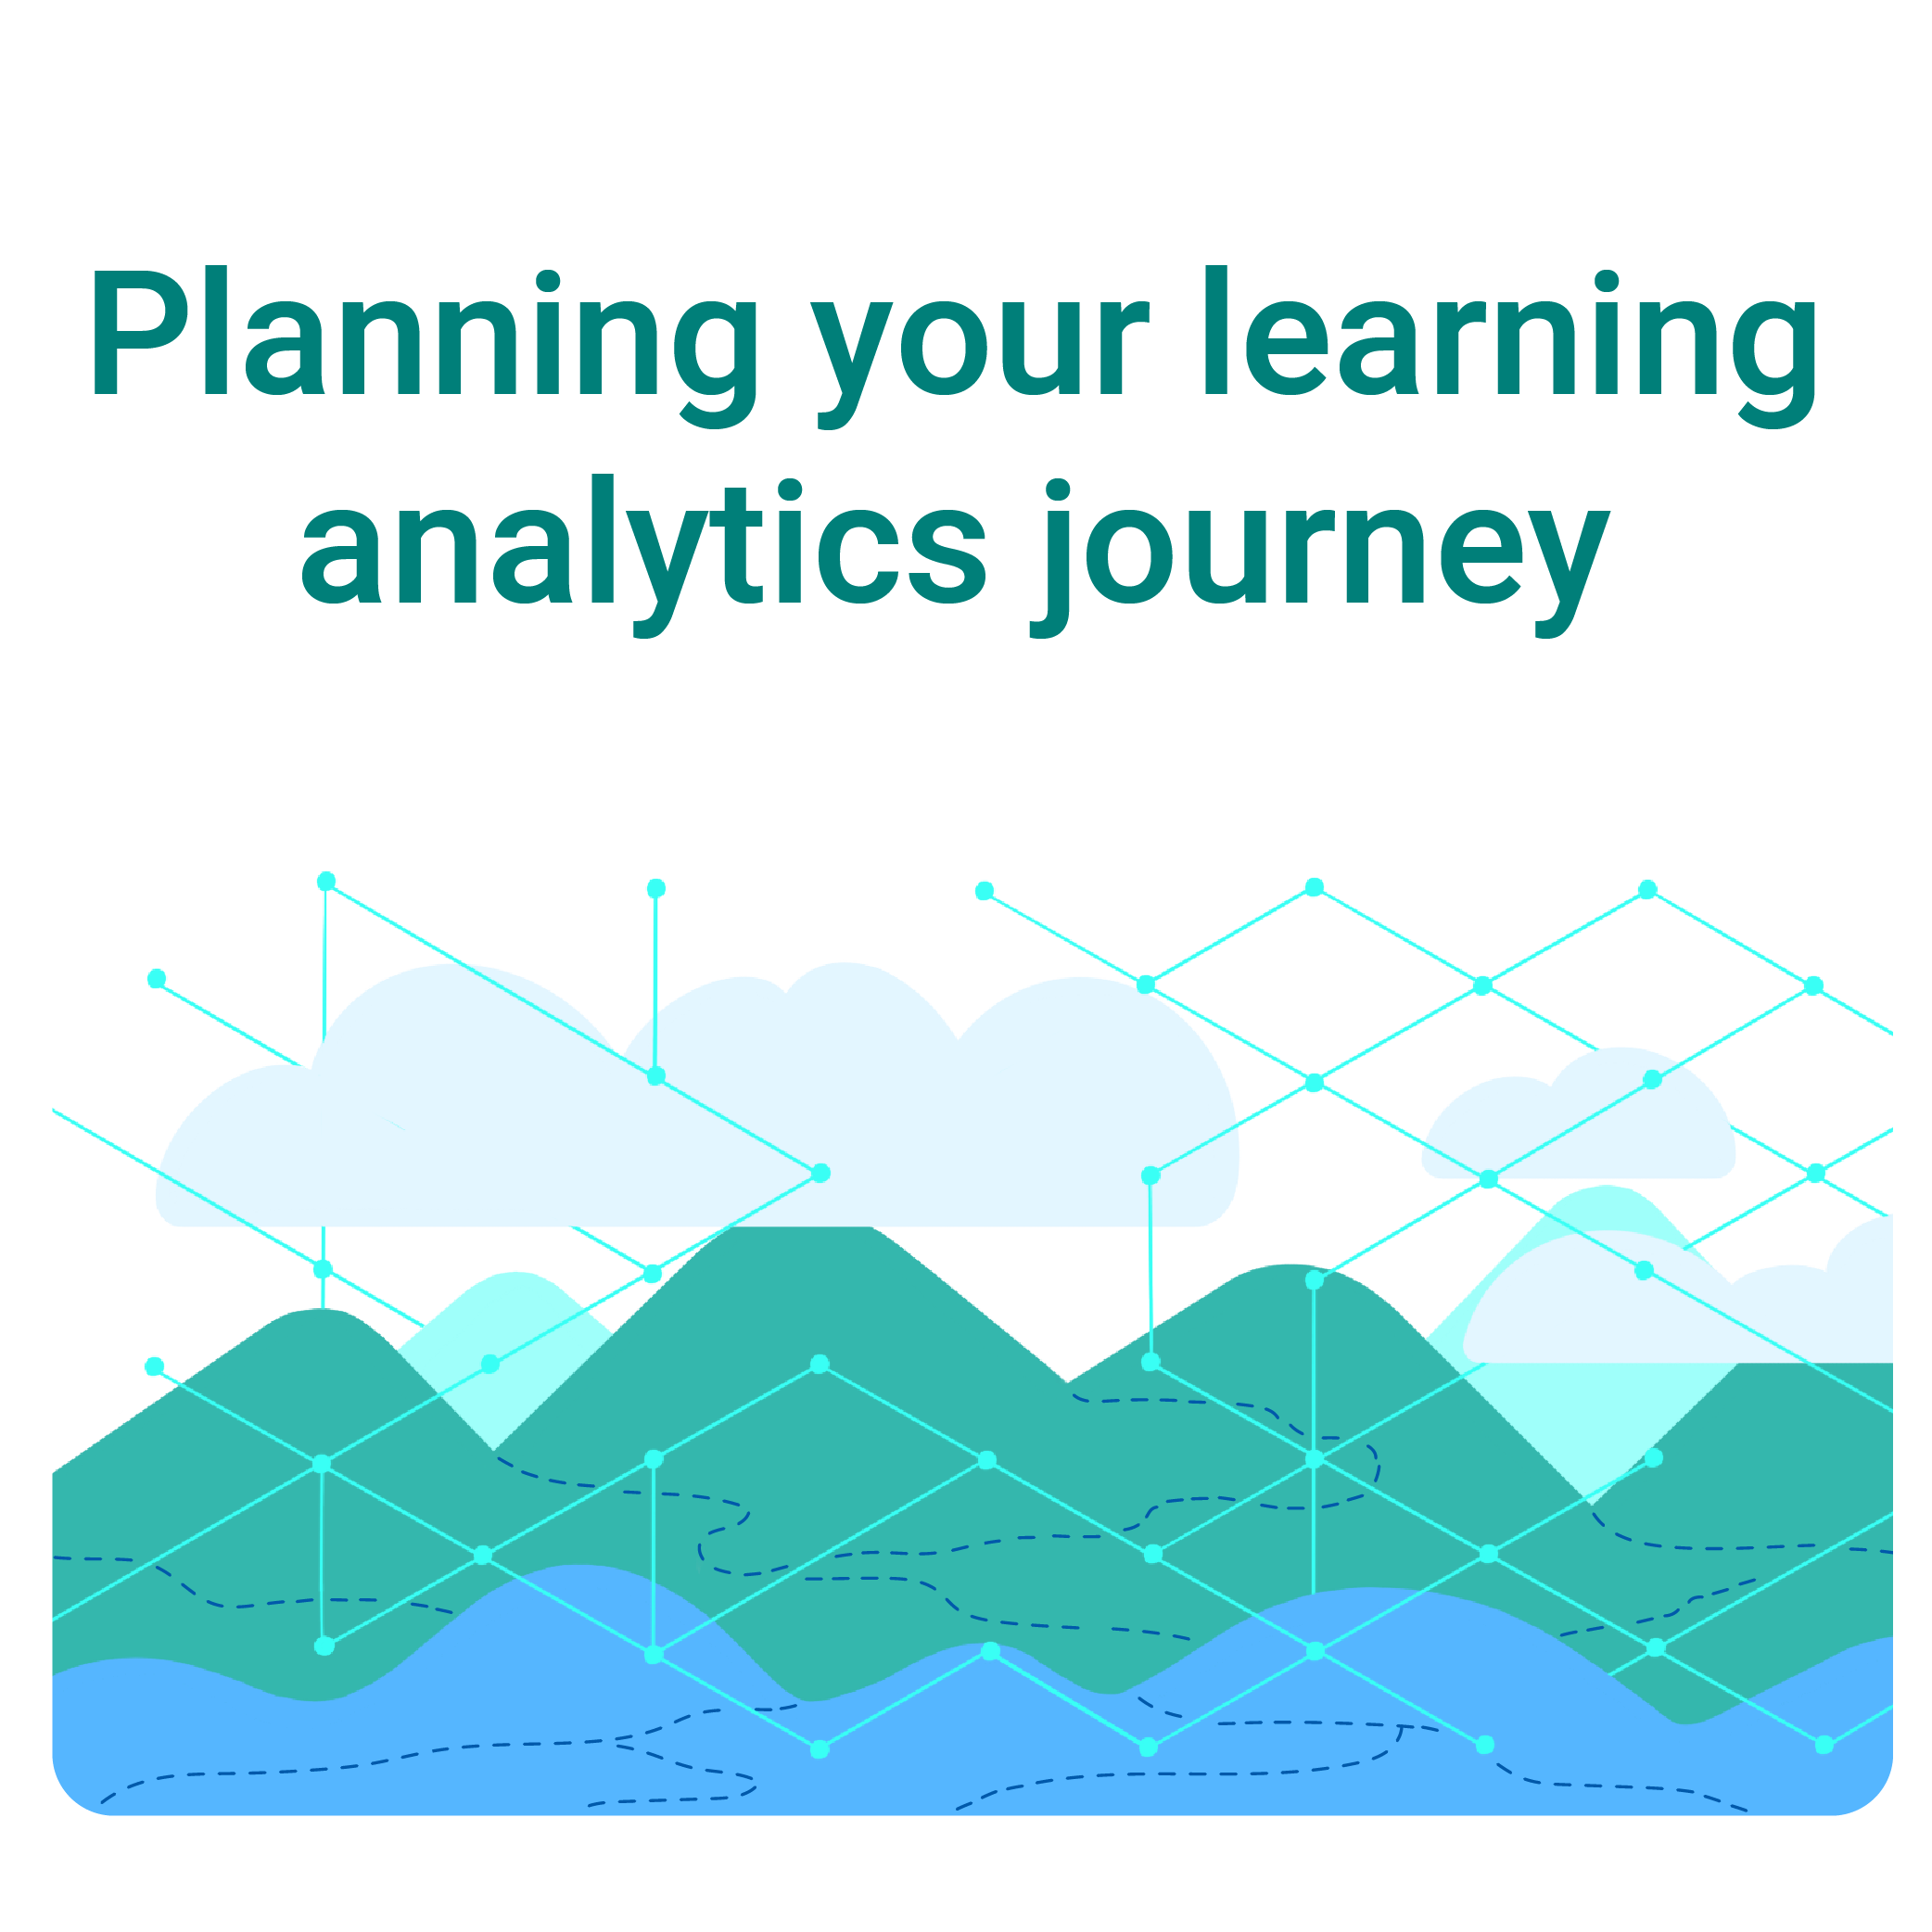 Planning learning analytics journey resources